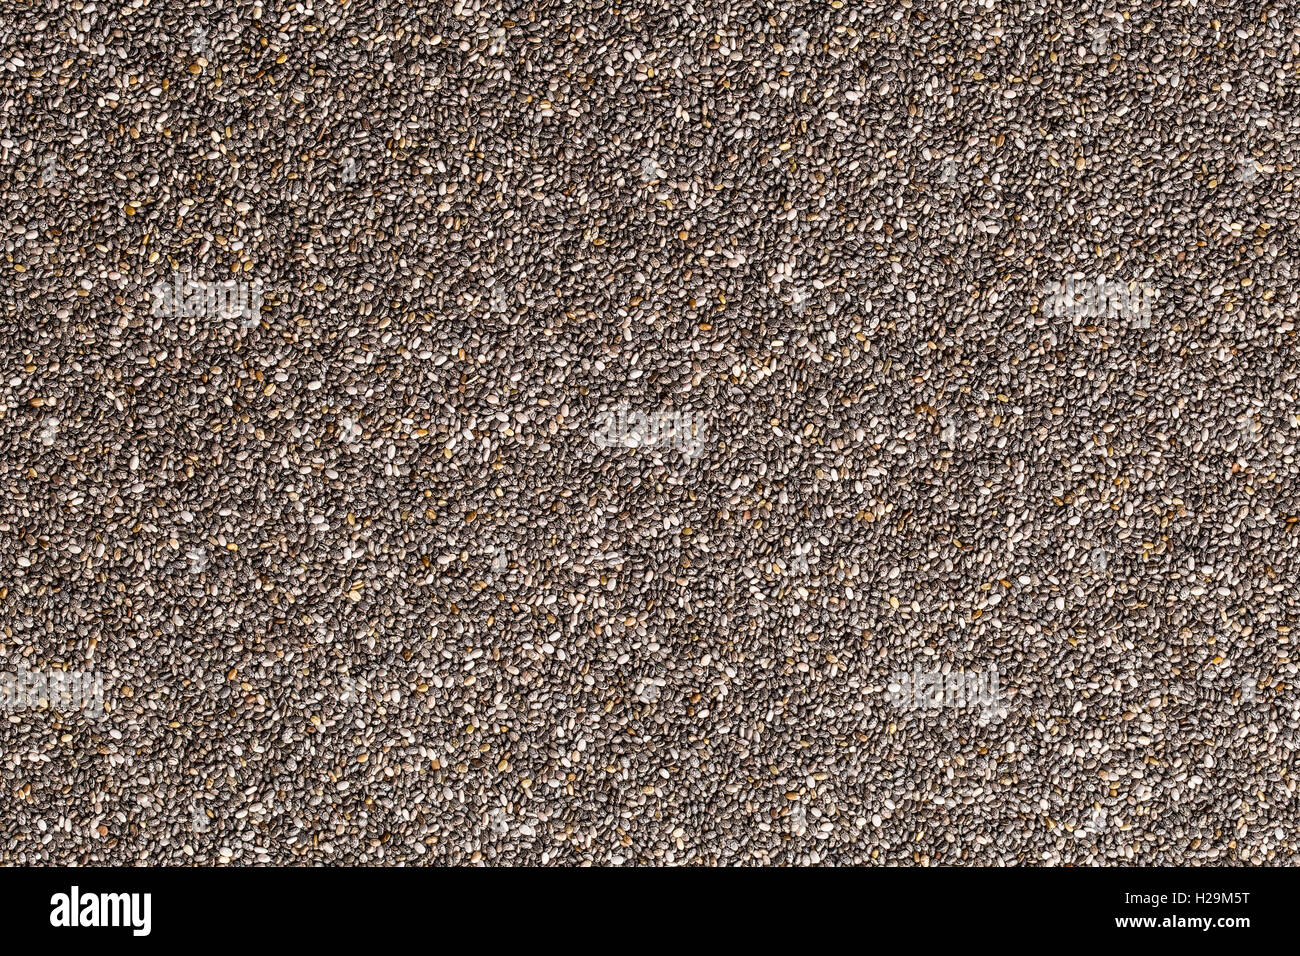 Chia seeds pattern. Top view. Healthy superfood. - Stock Image